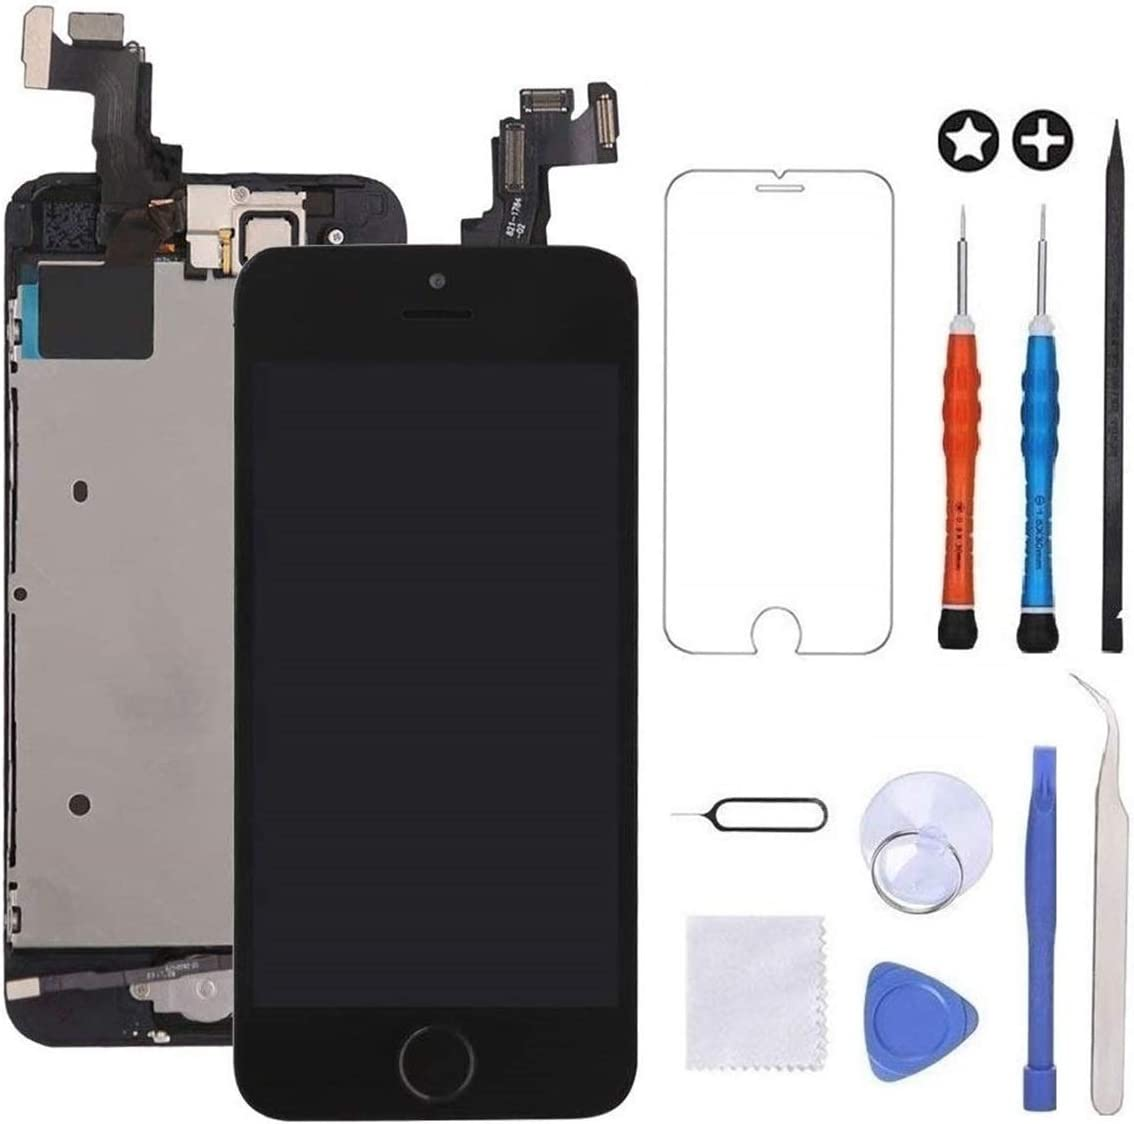 GULEEK for iPhone 5s/Se Screen Replacement Black Touch Display LCD Digitizer Full Assembly with Front Camera,Proximity Sensor,Ear Speaker and Home Button Including Repair Tool and Screen Protector